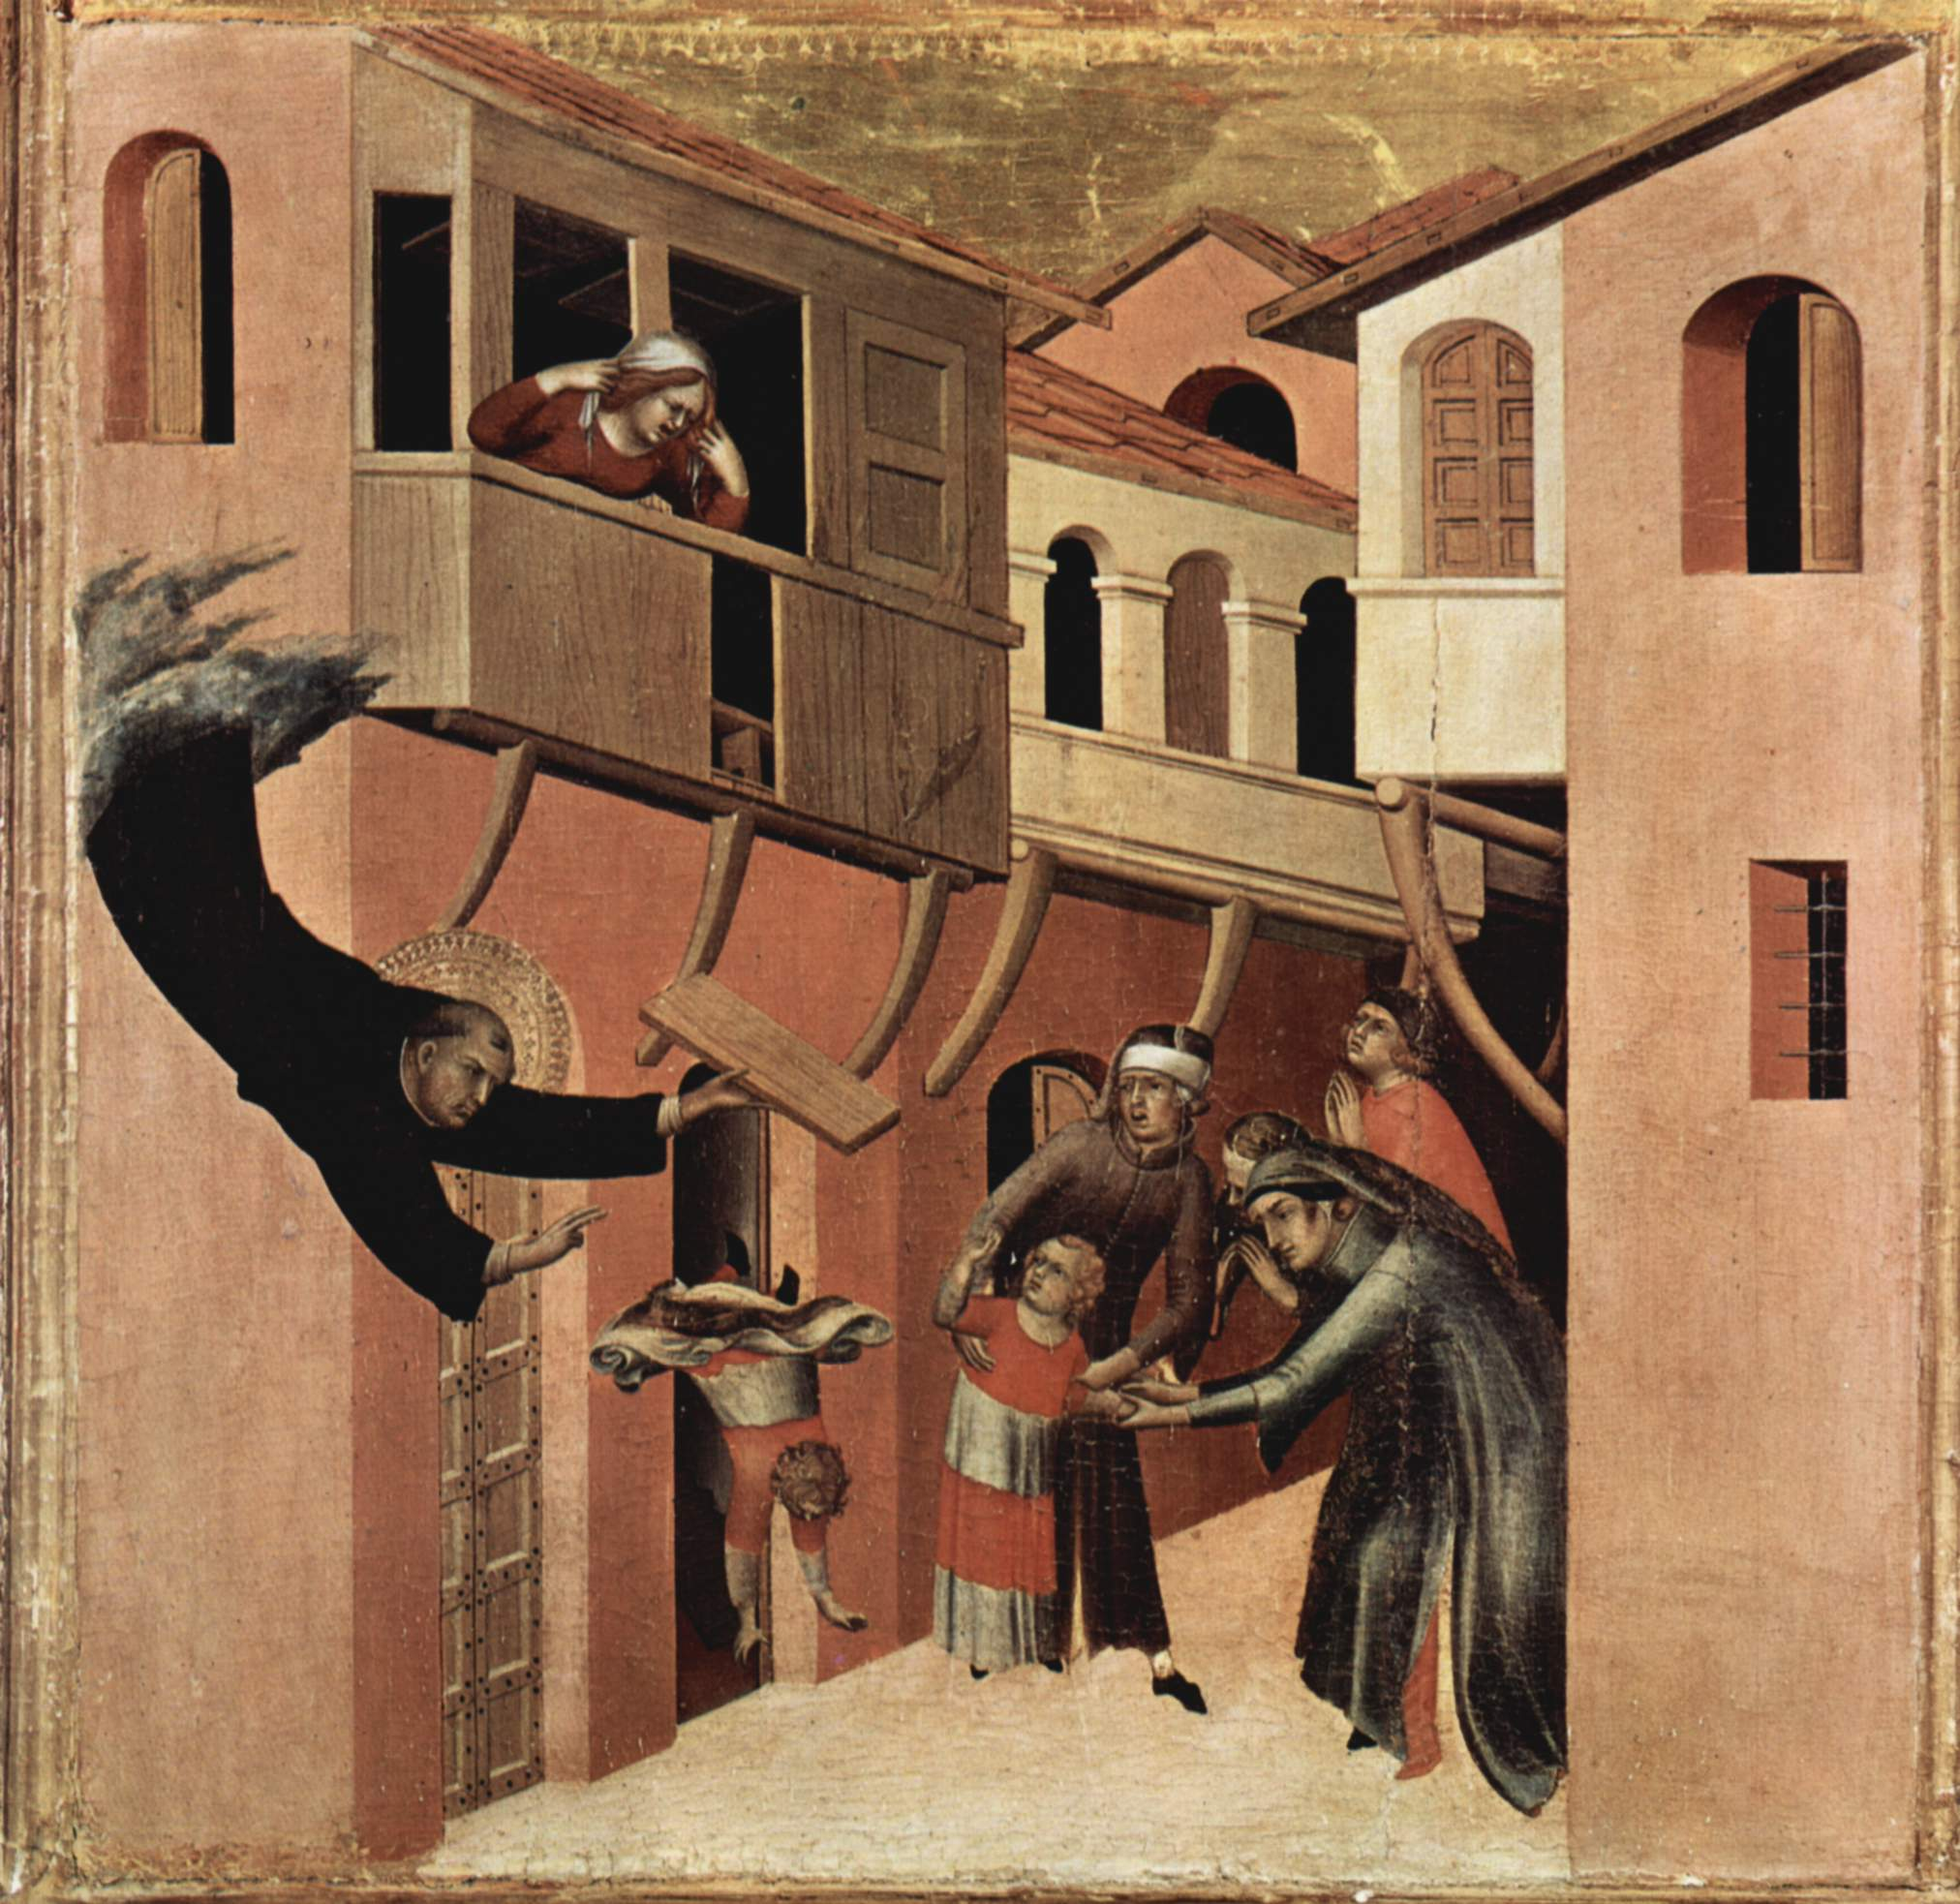 Simone Martini. The Miracle of the child falling from the balcony. Church of St. Augustine Novello, Siena, Italy. ca 1328.